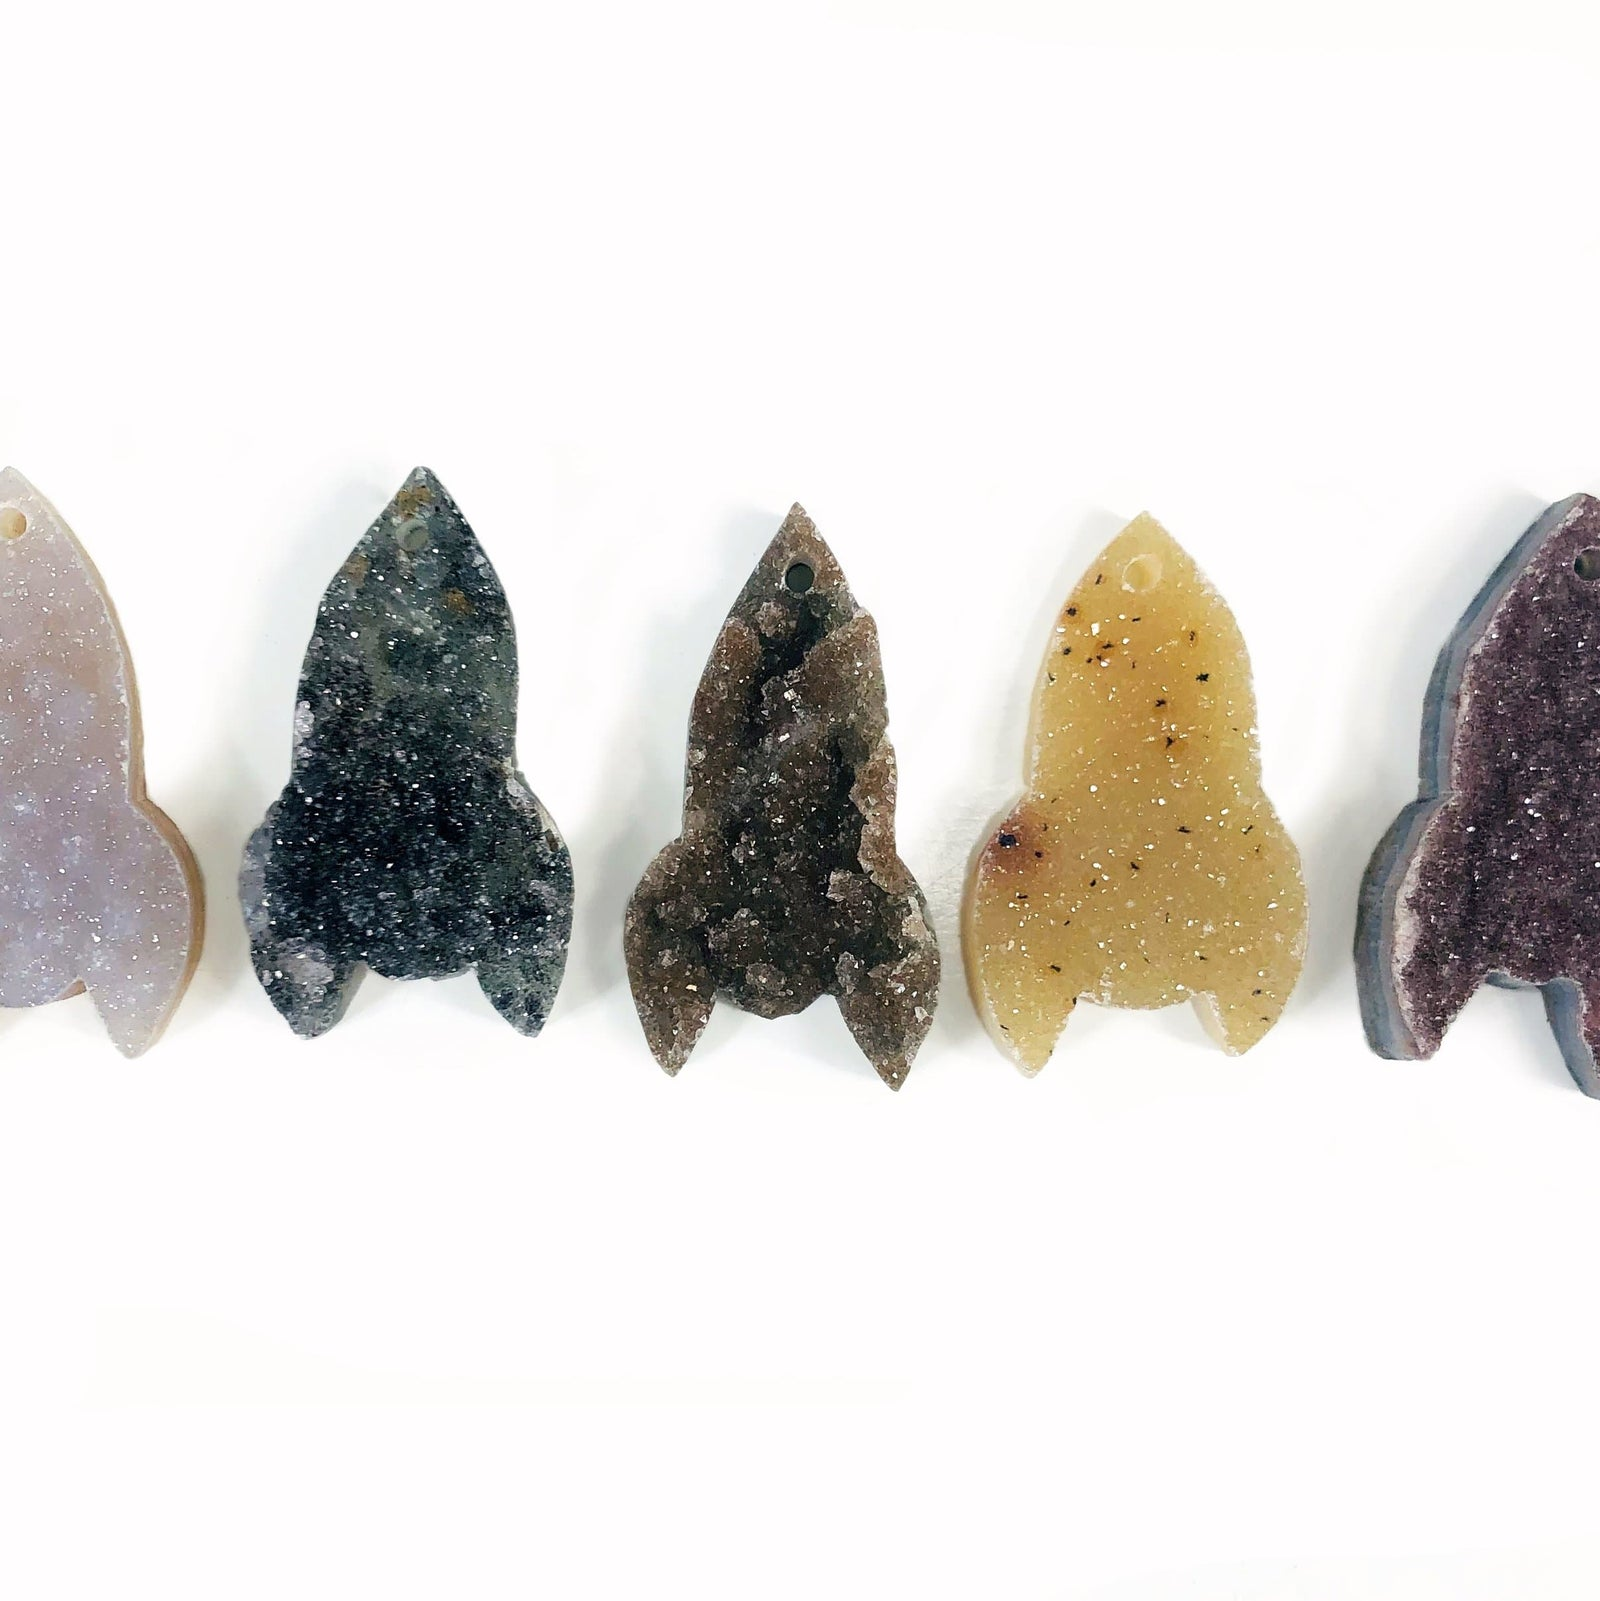 Druzy Rocket Shaped Cabochons - DRILLED (RK117B2)